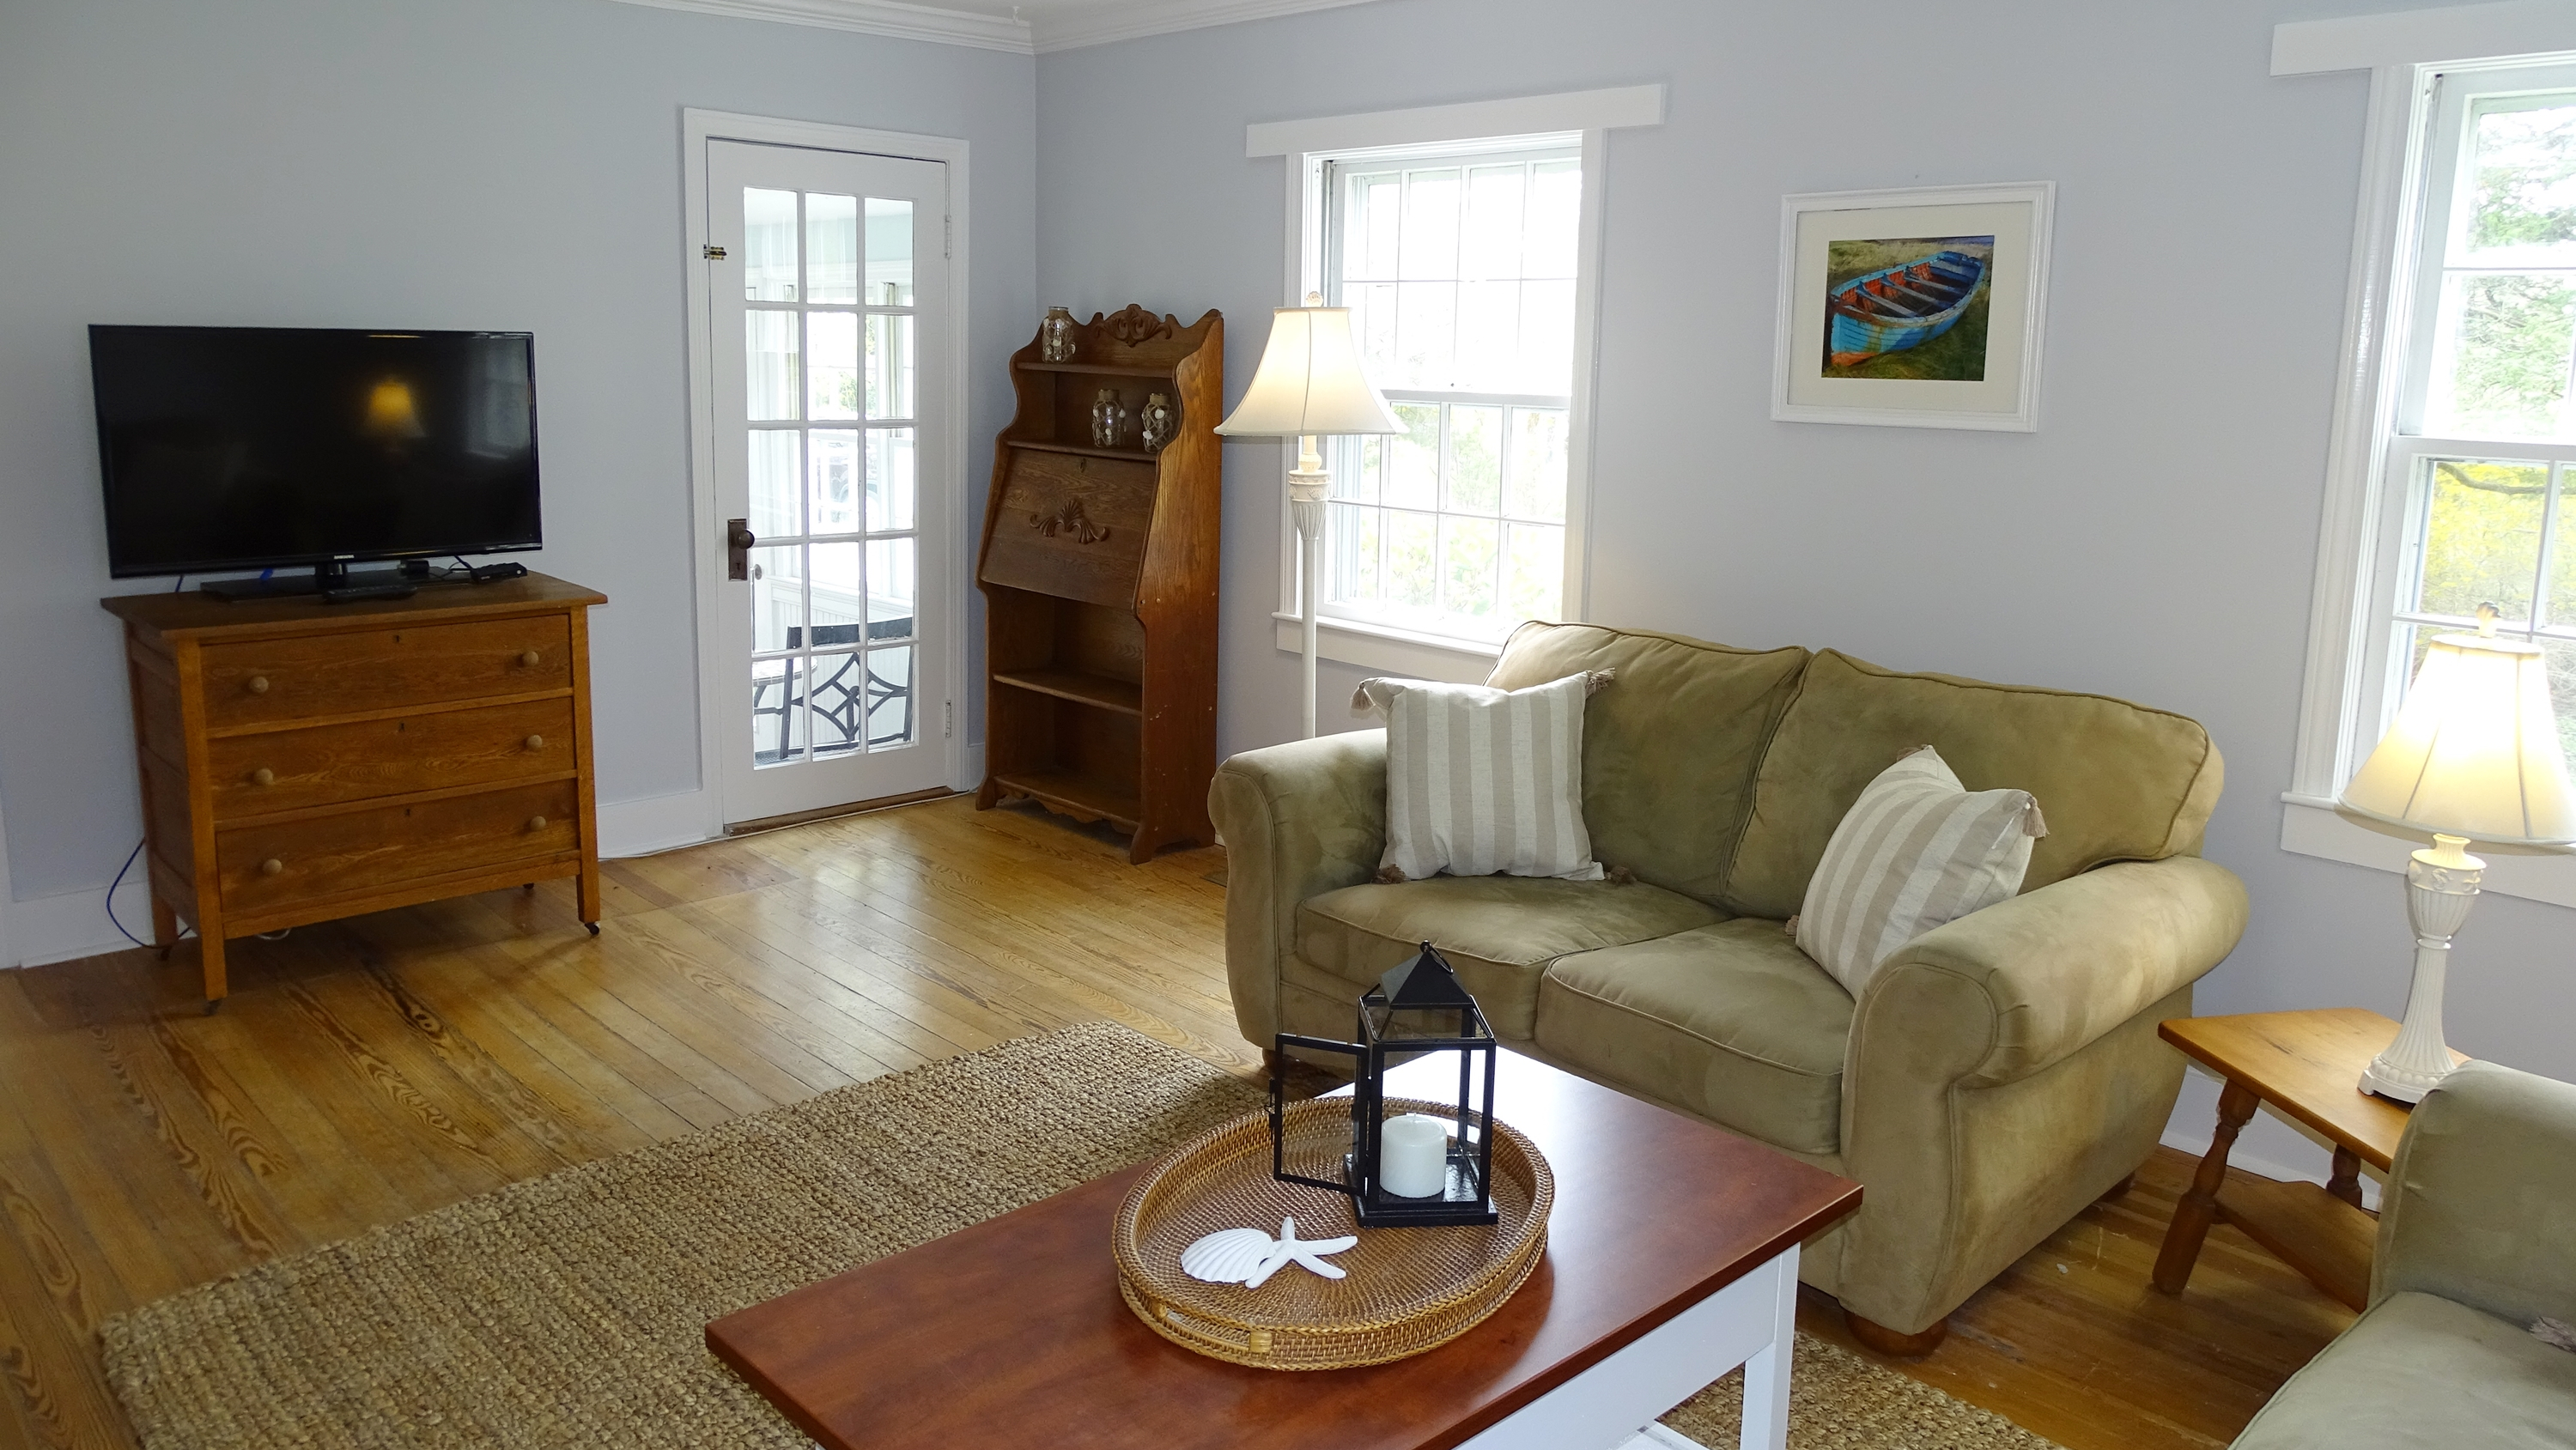 living room photo after home makeover in Harwich, MA (Cape Cod)